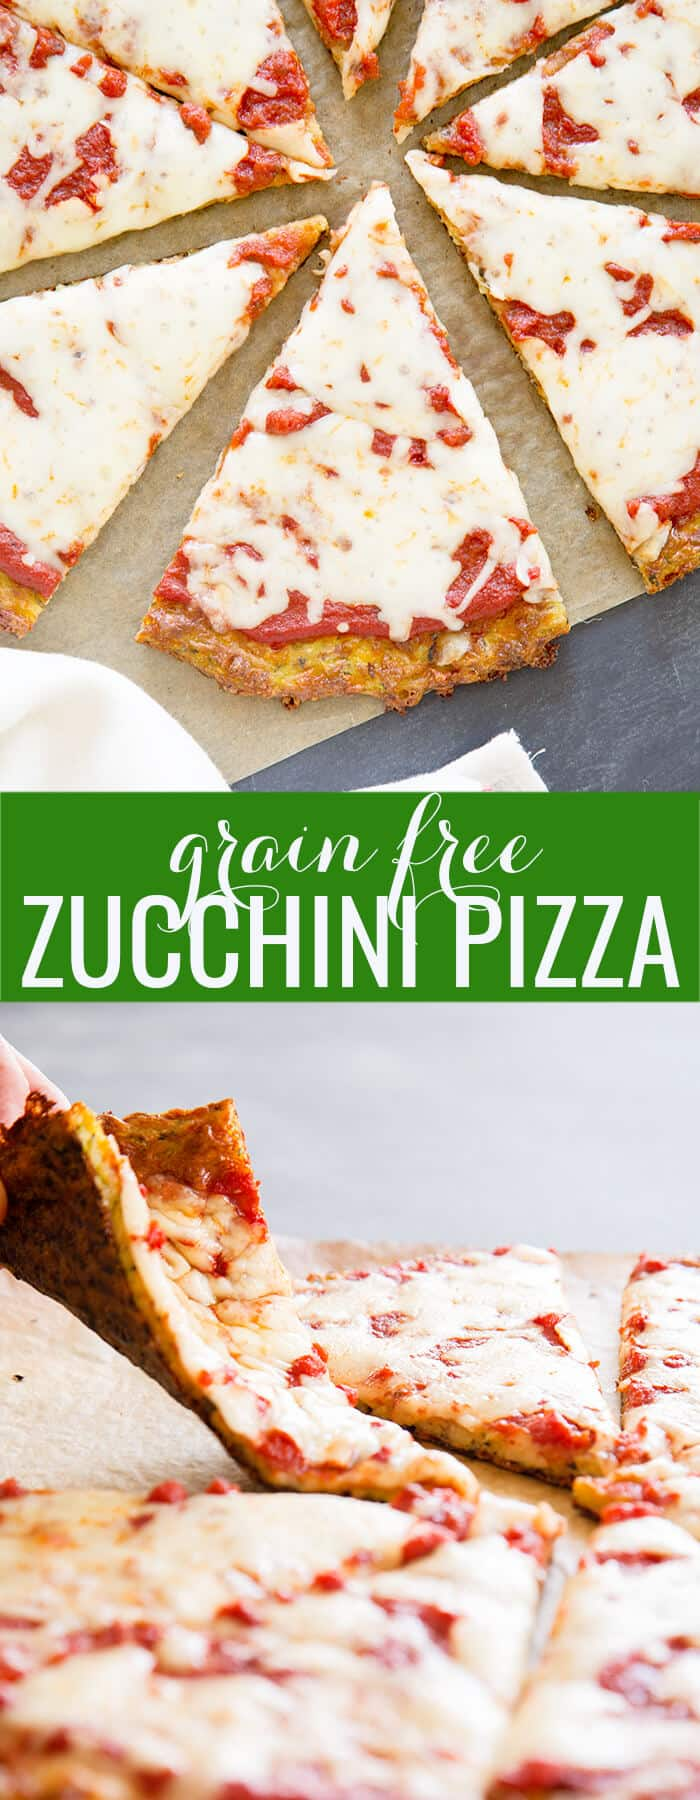 Overhead image of slices of zucchini pizza and a hand folding a piece of zucchini pizza